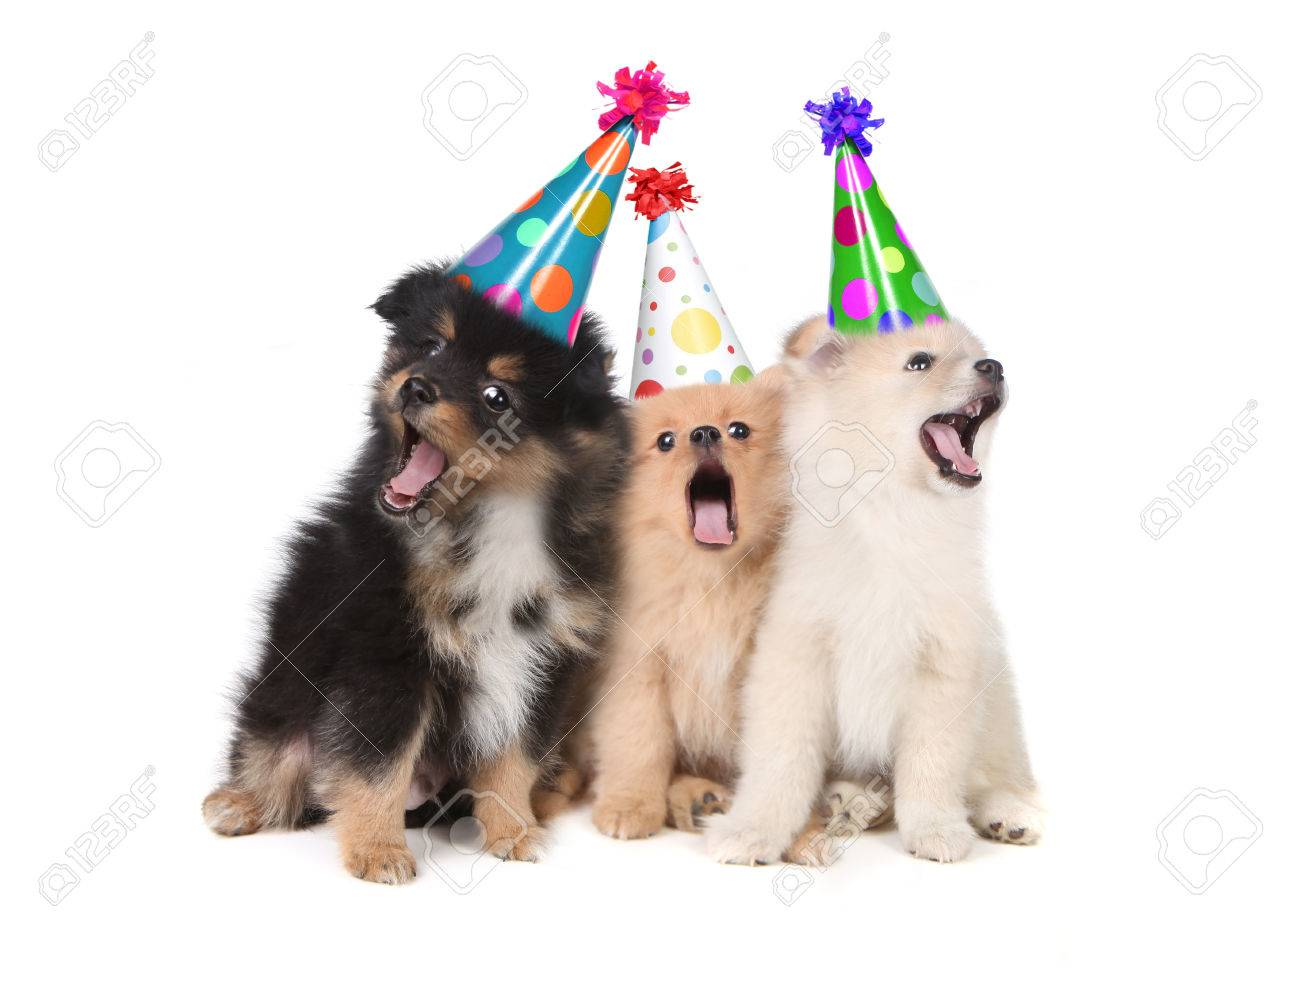 Humorous Puppies Singing the Happy Birthday Song Wearing Silly